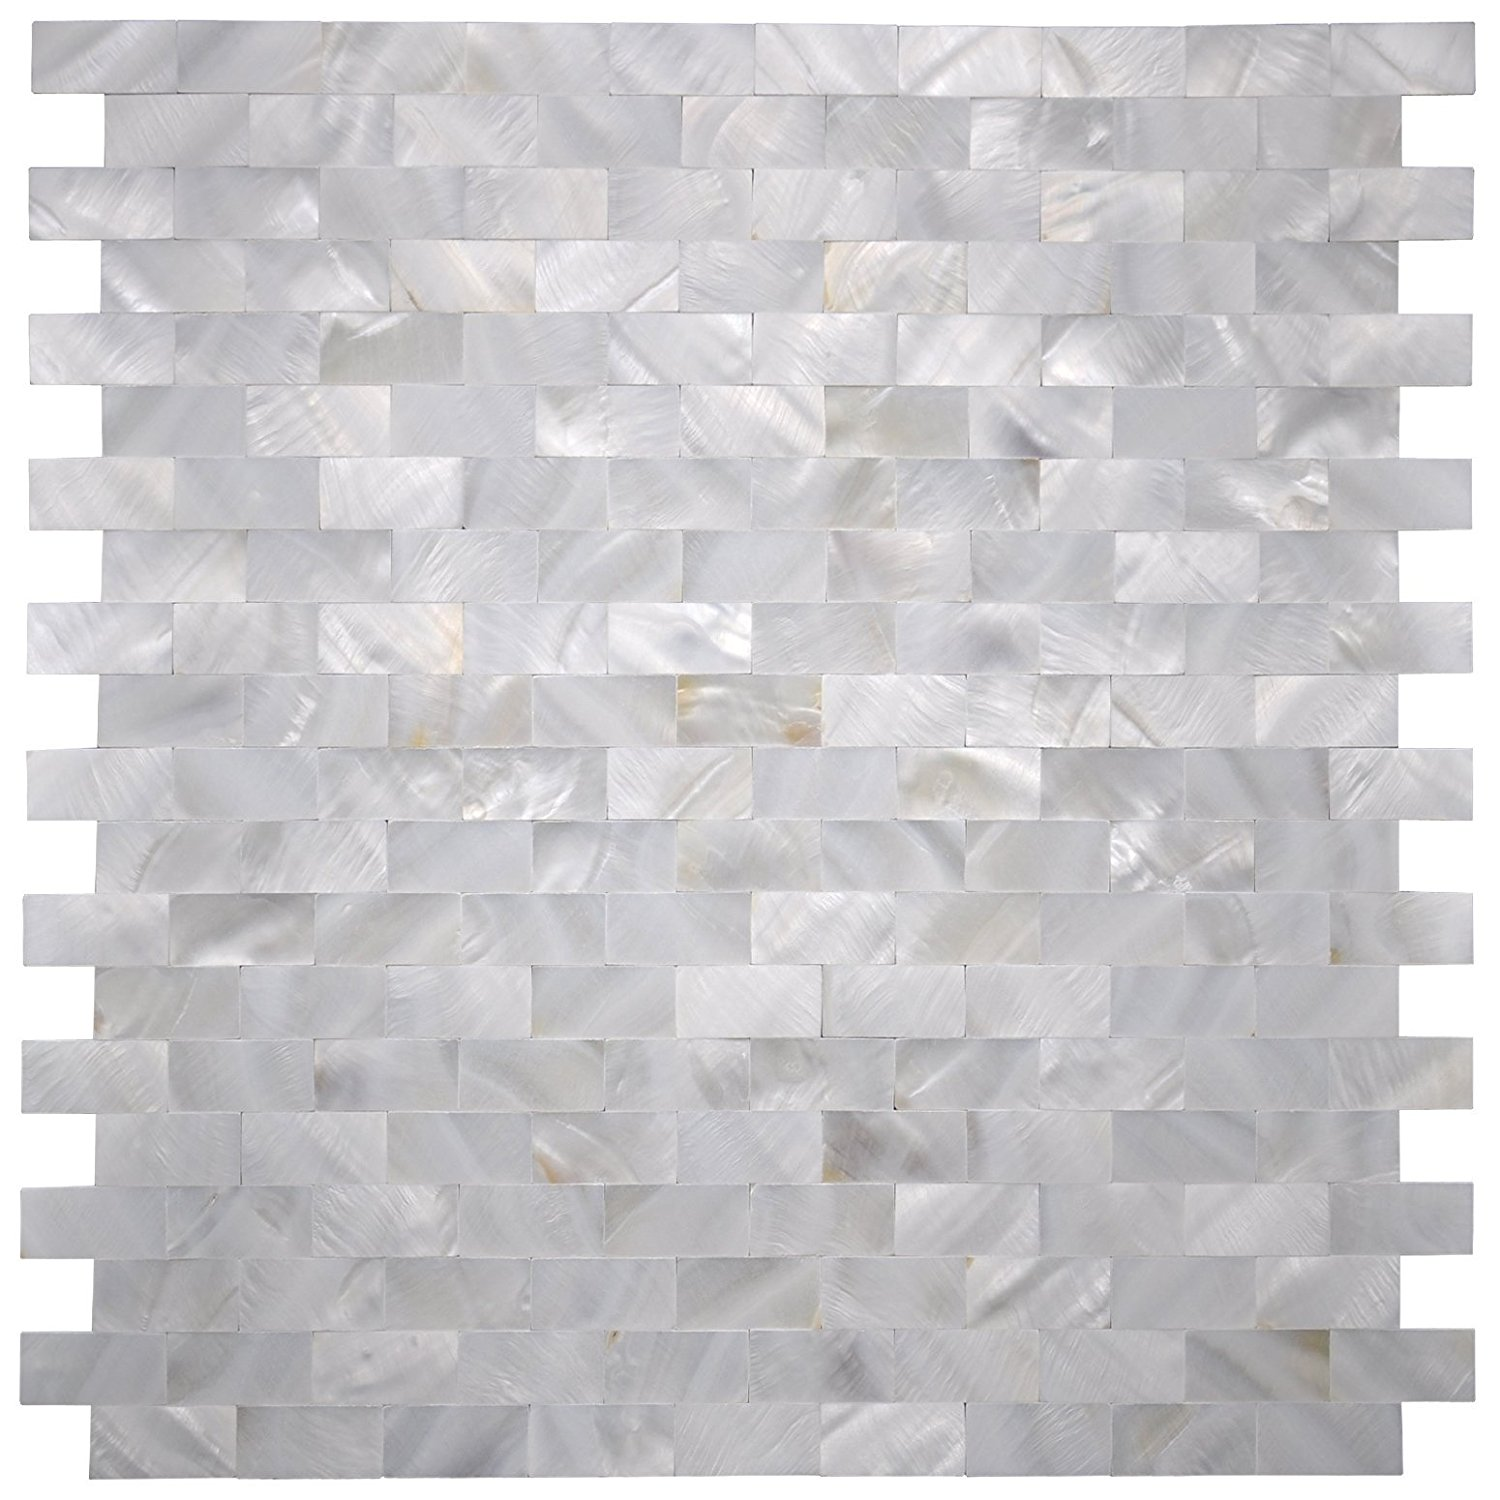 "Art3d 6-Pack White MOP Shell Mosaic Tile for Kitchen Backsplashes / Shower Wall, 12"" x 12"" Groutless Subway"